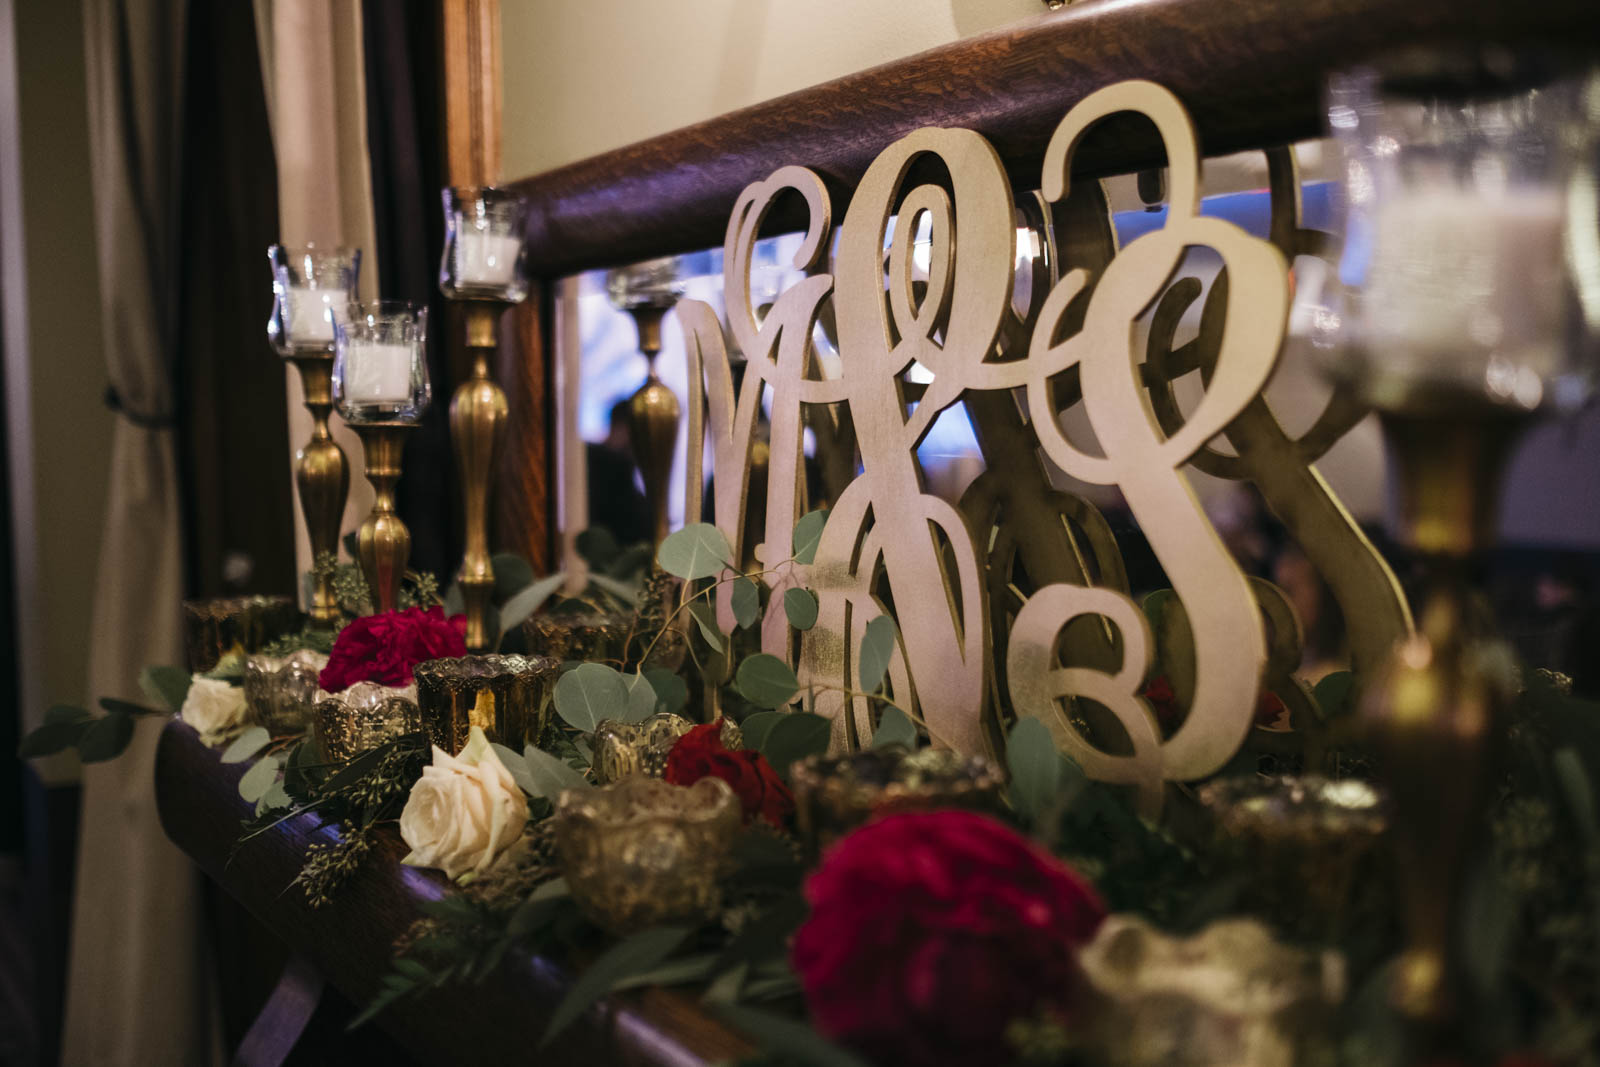 Wedding monogram and floral inspiration from Bartz Viviano in Toledo, Ohio.